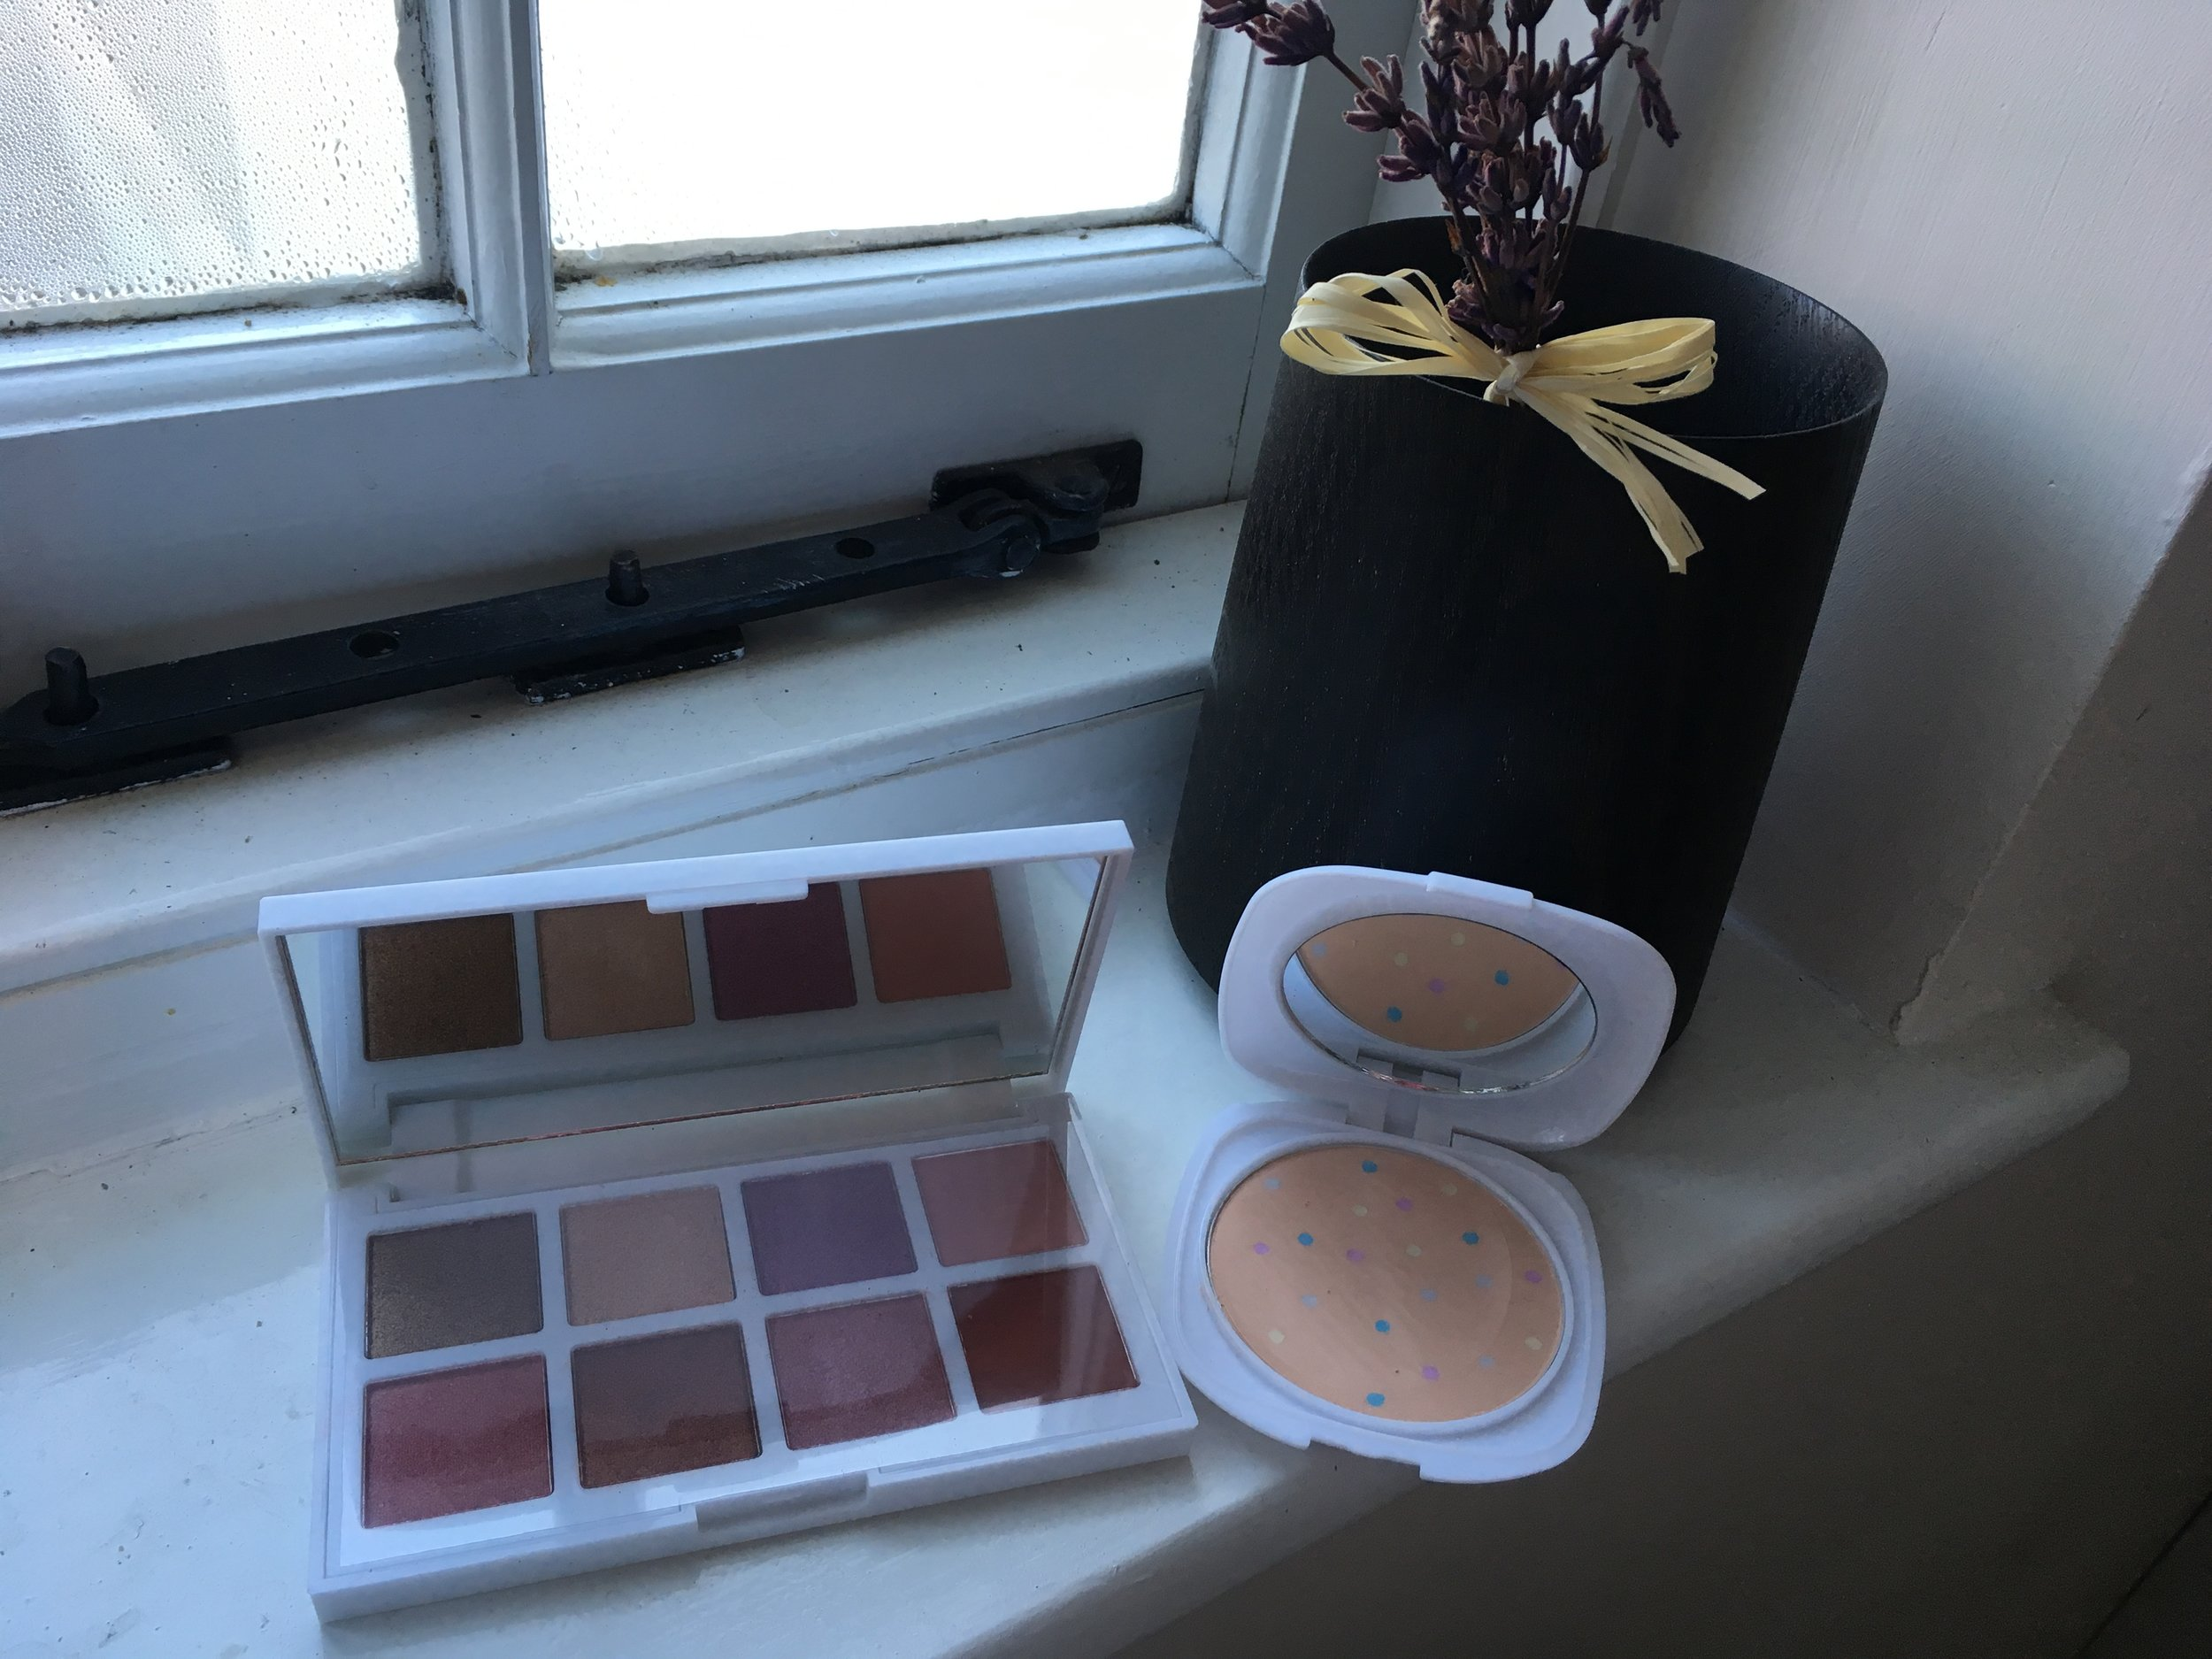 Etmore Beauty eyeshadow palette and mineral complexion